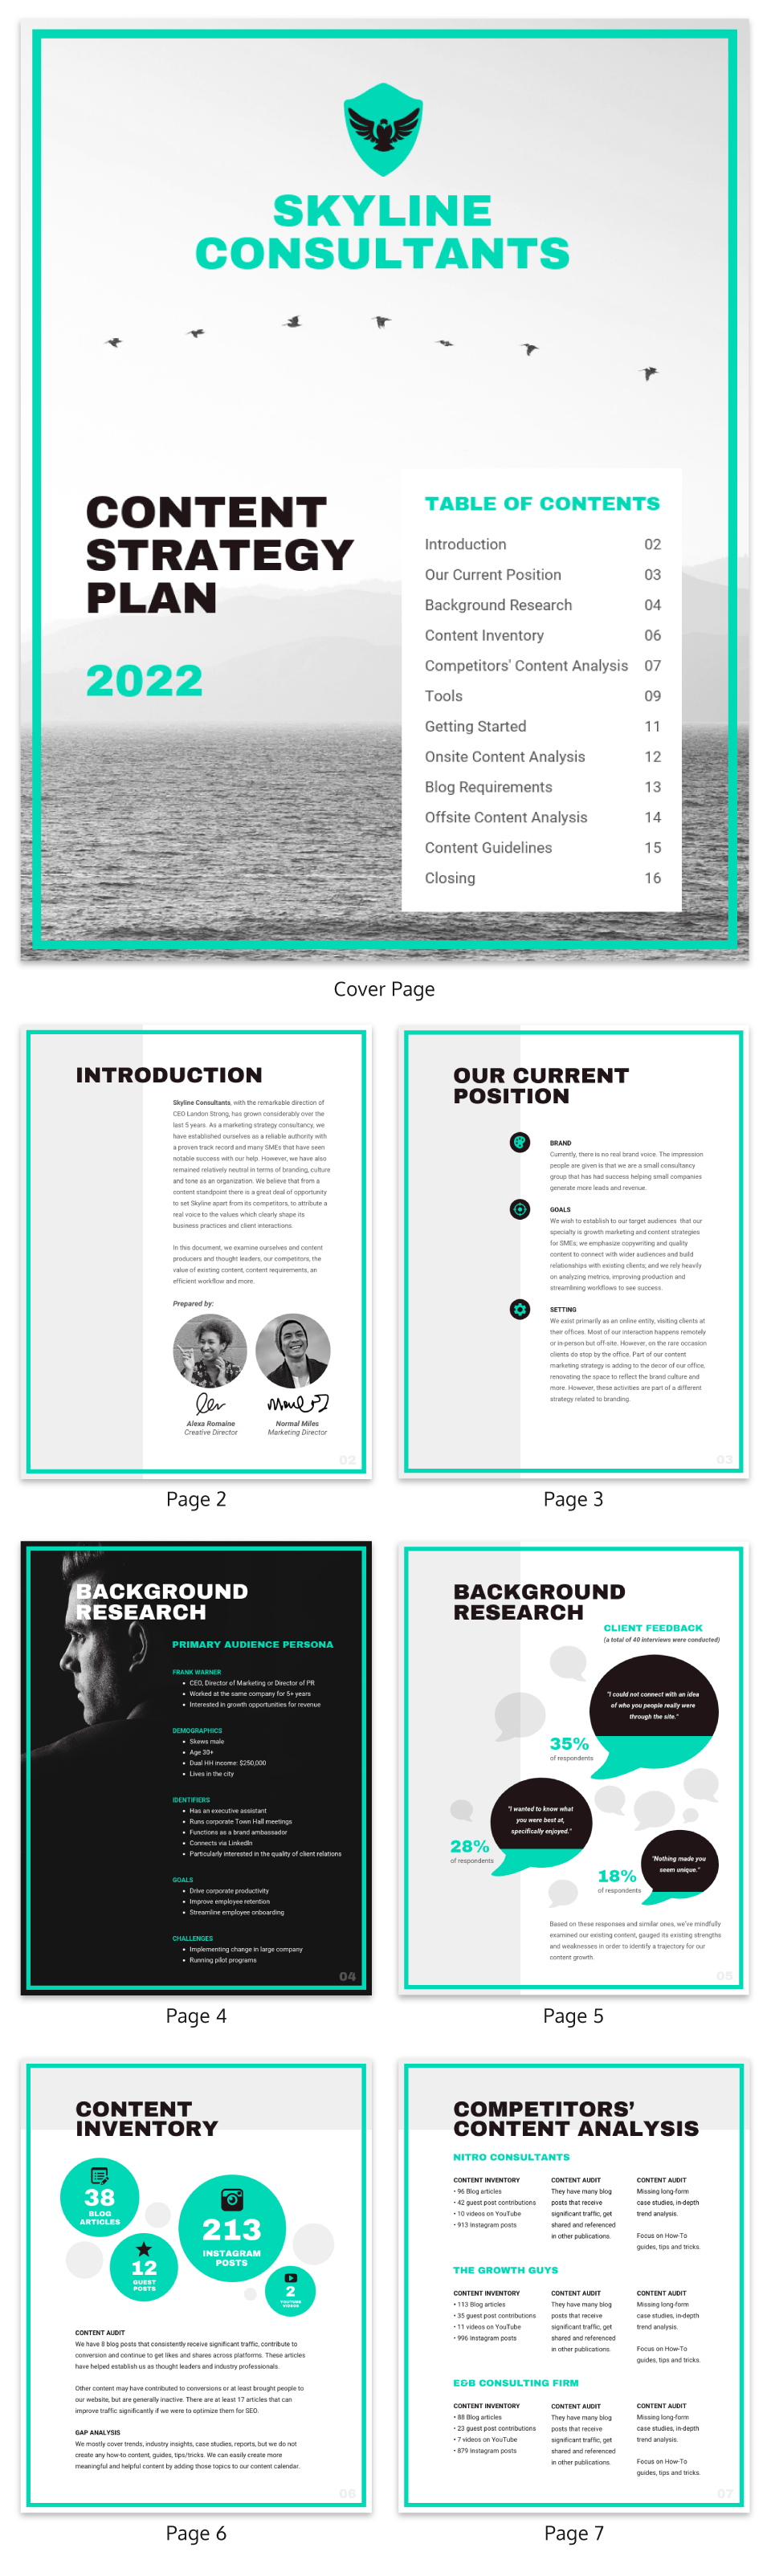 Content Strategy Plan Template